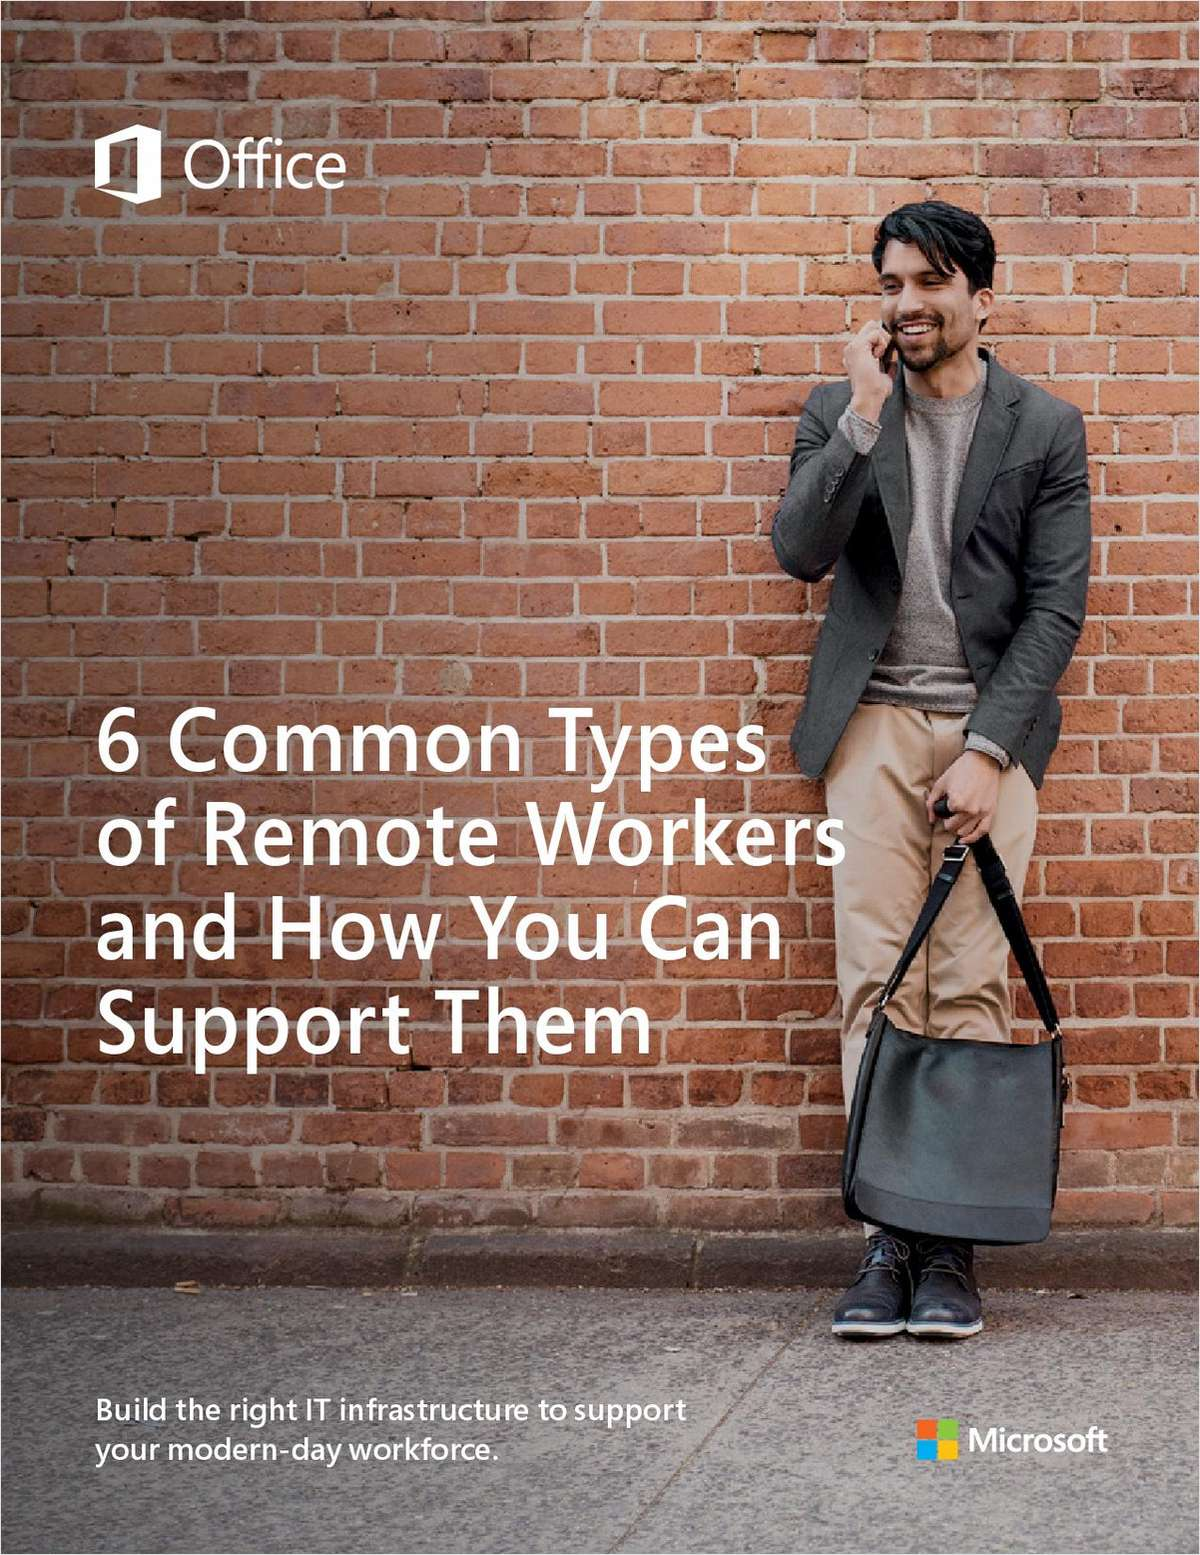 6 Common Types of Remote Workers and How You Can Support Them